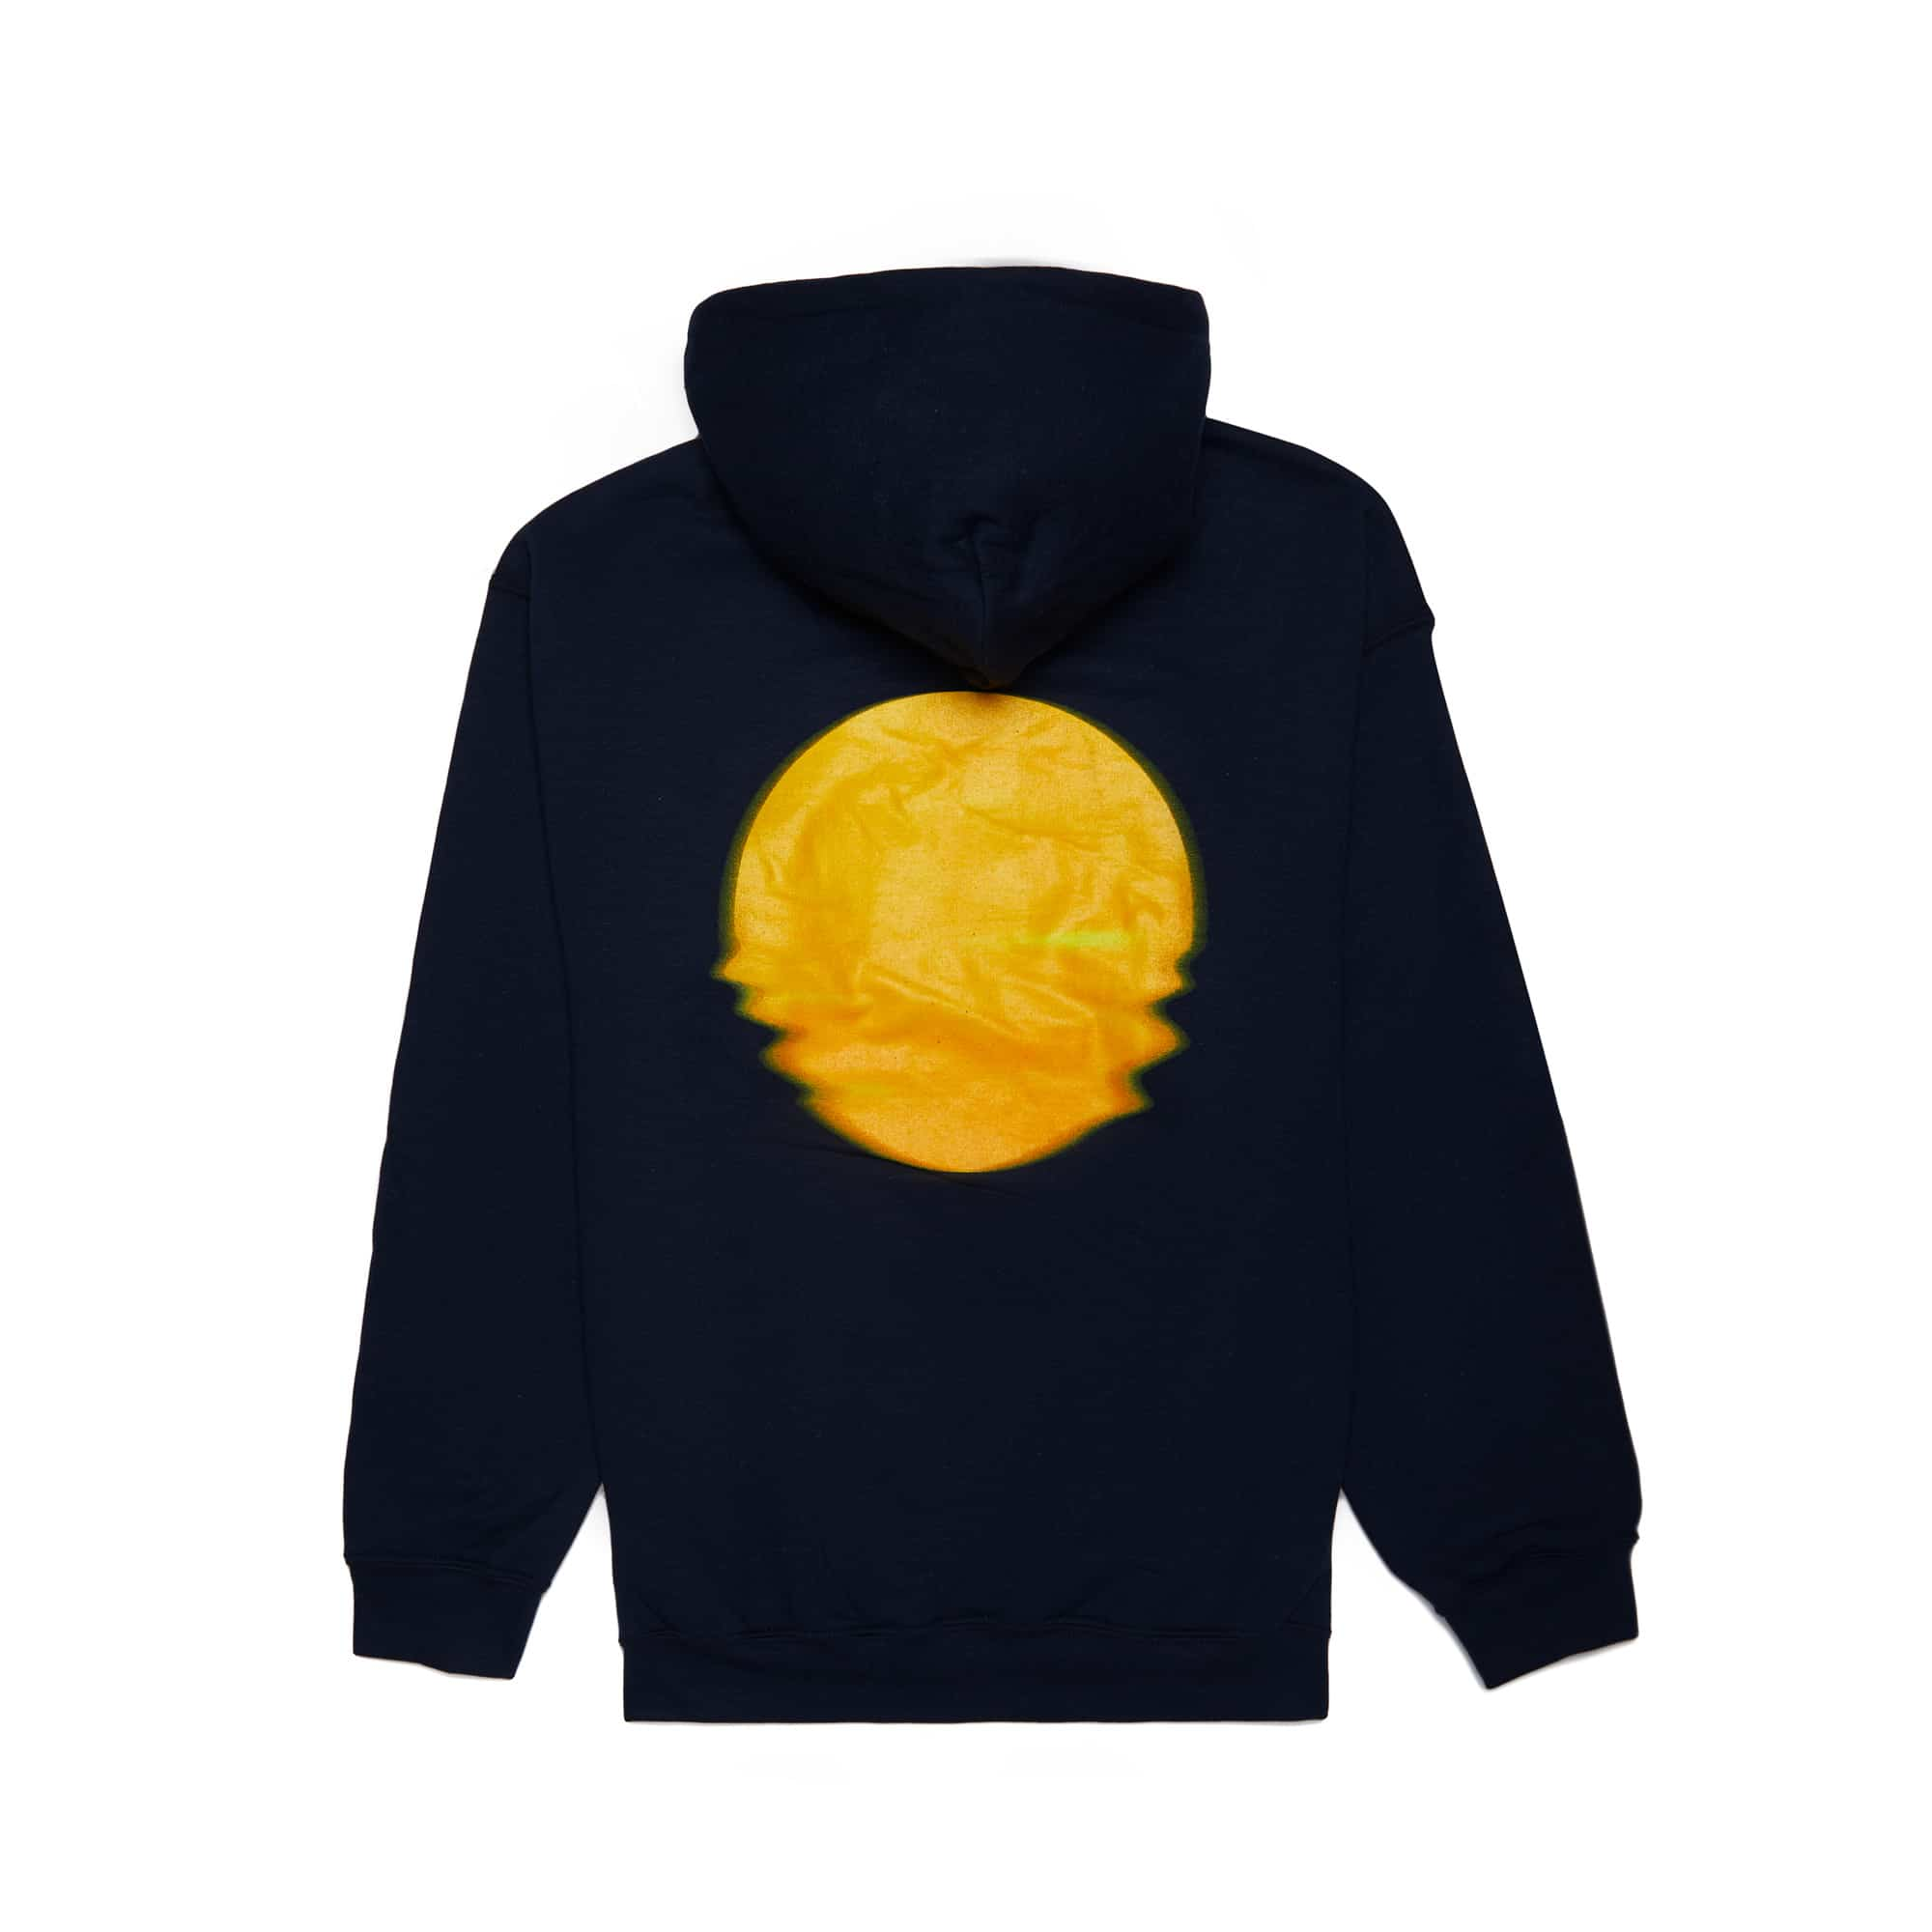 'Suncity' Pull Over Hoodie + Digital Download - Navy